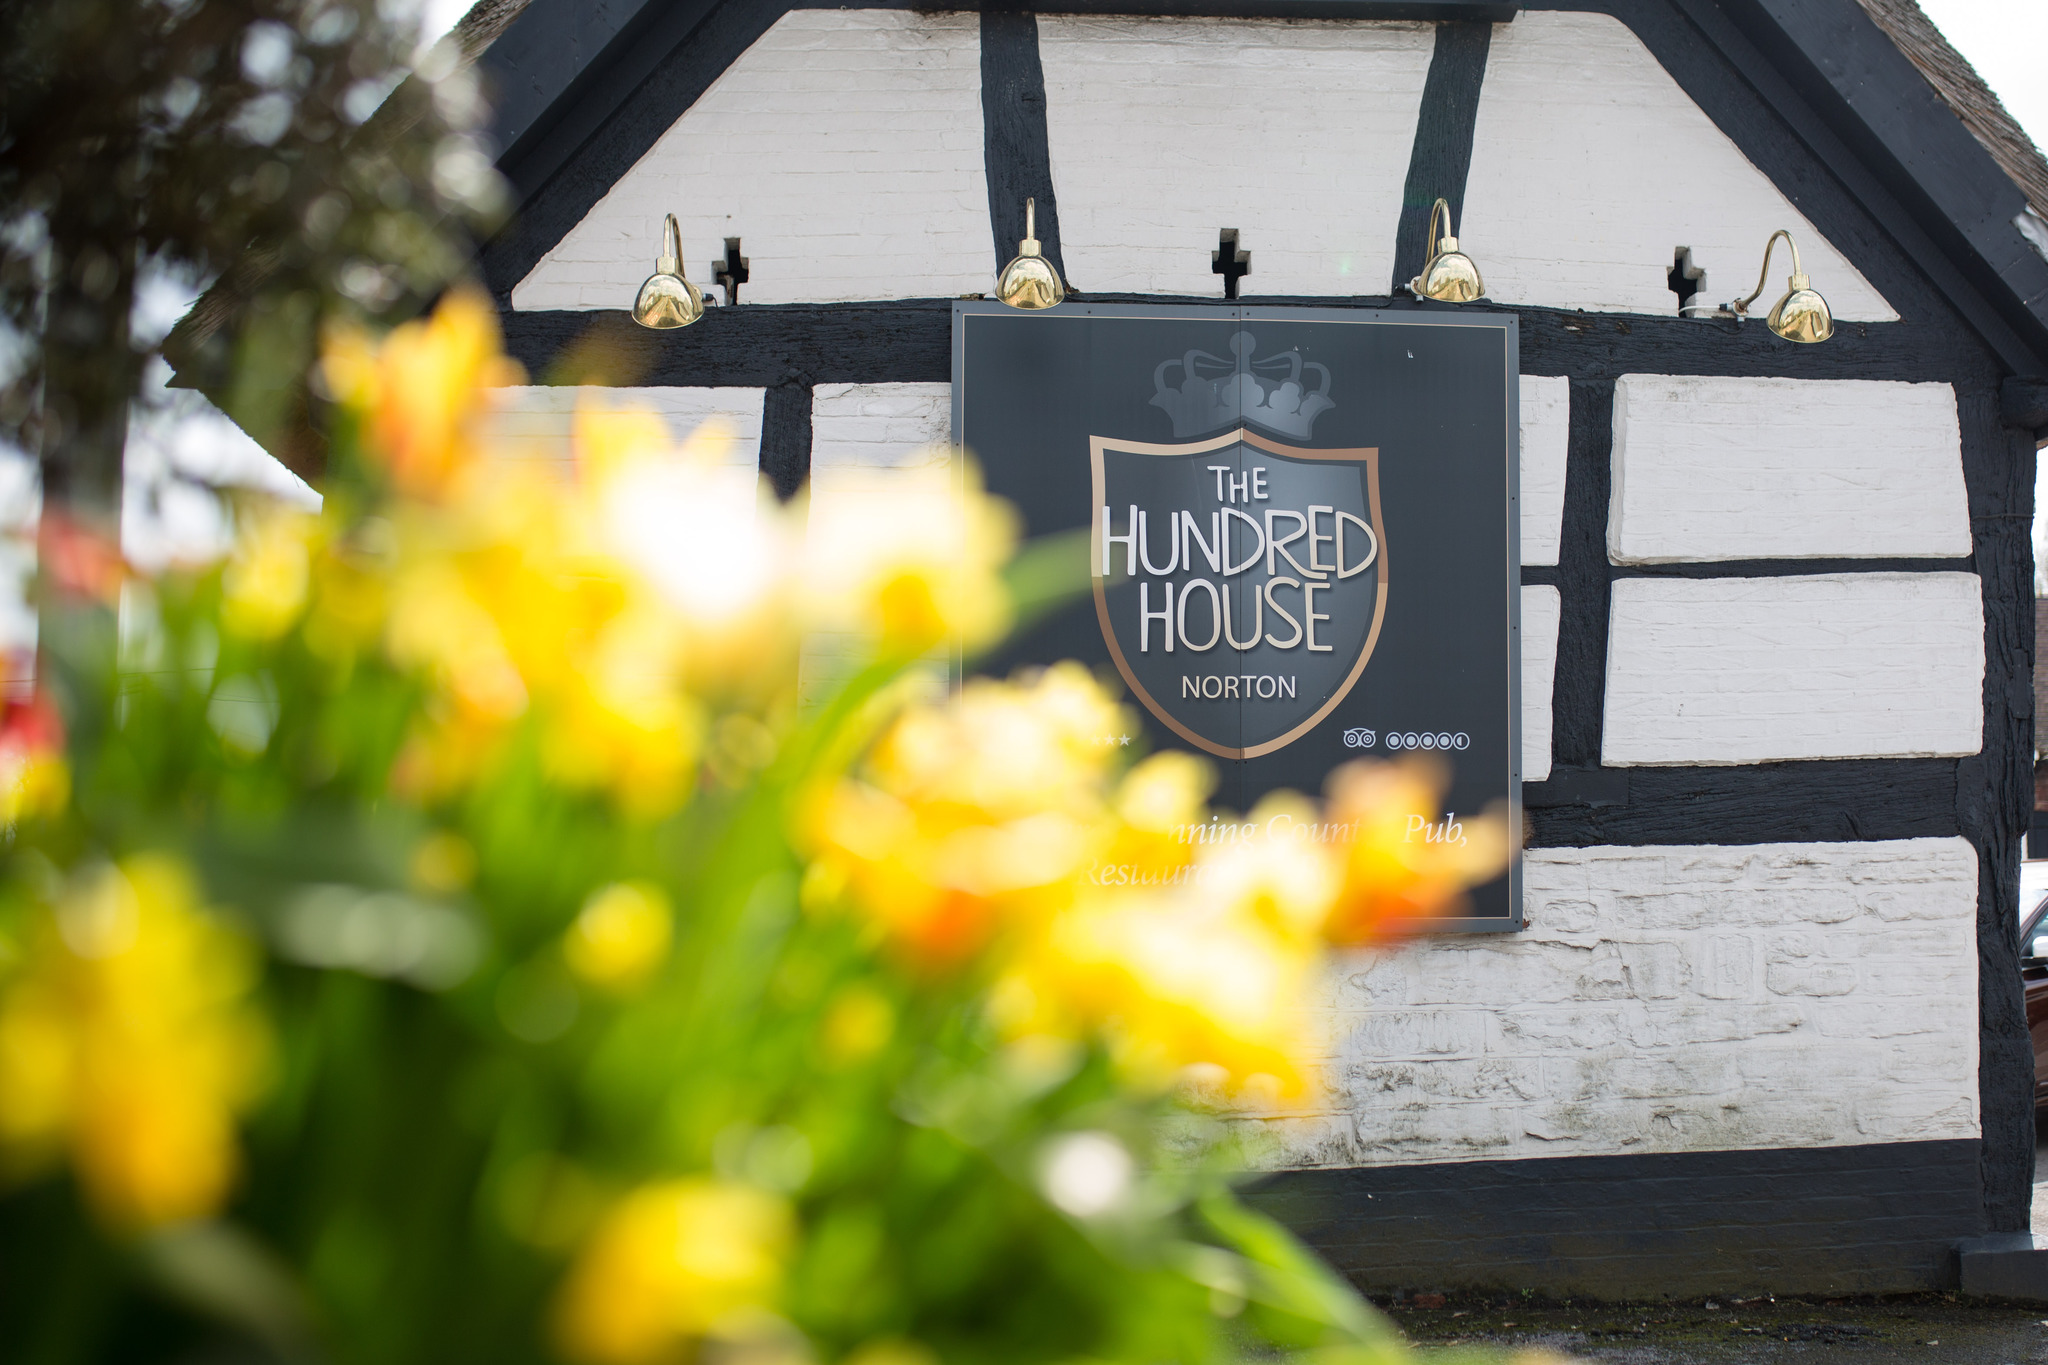 Hundred House Wedding Venue Exterior with daffodils and sign